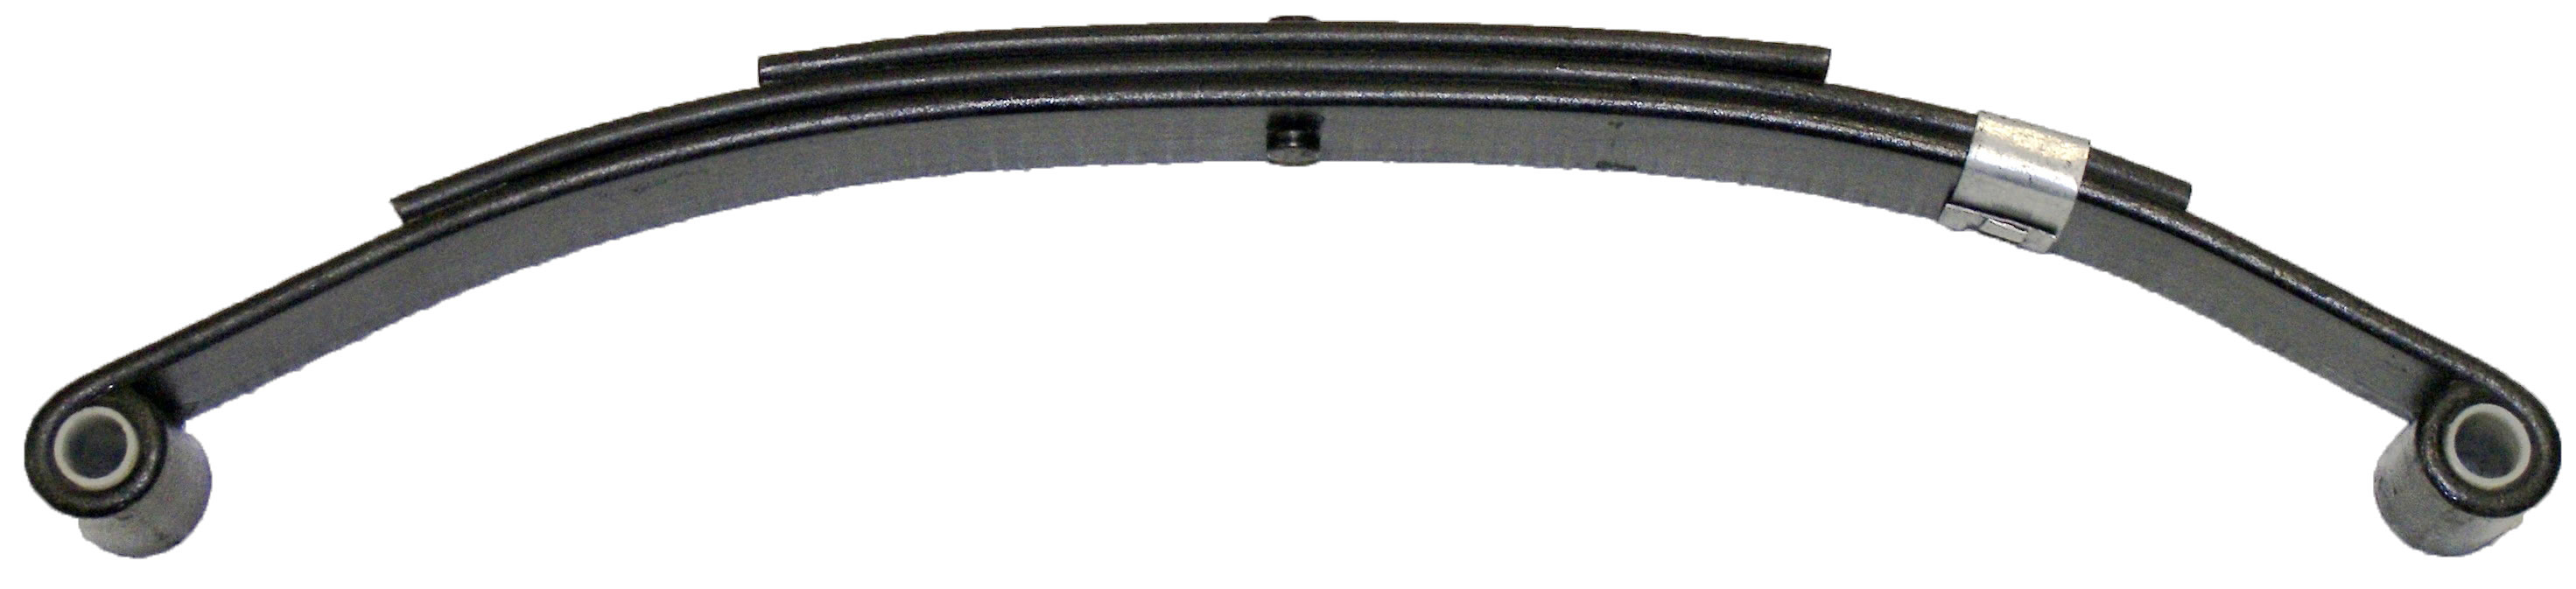 014-127094 AP Products Leaf Spring 2.12 Inch Height